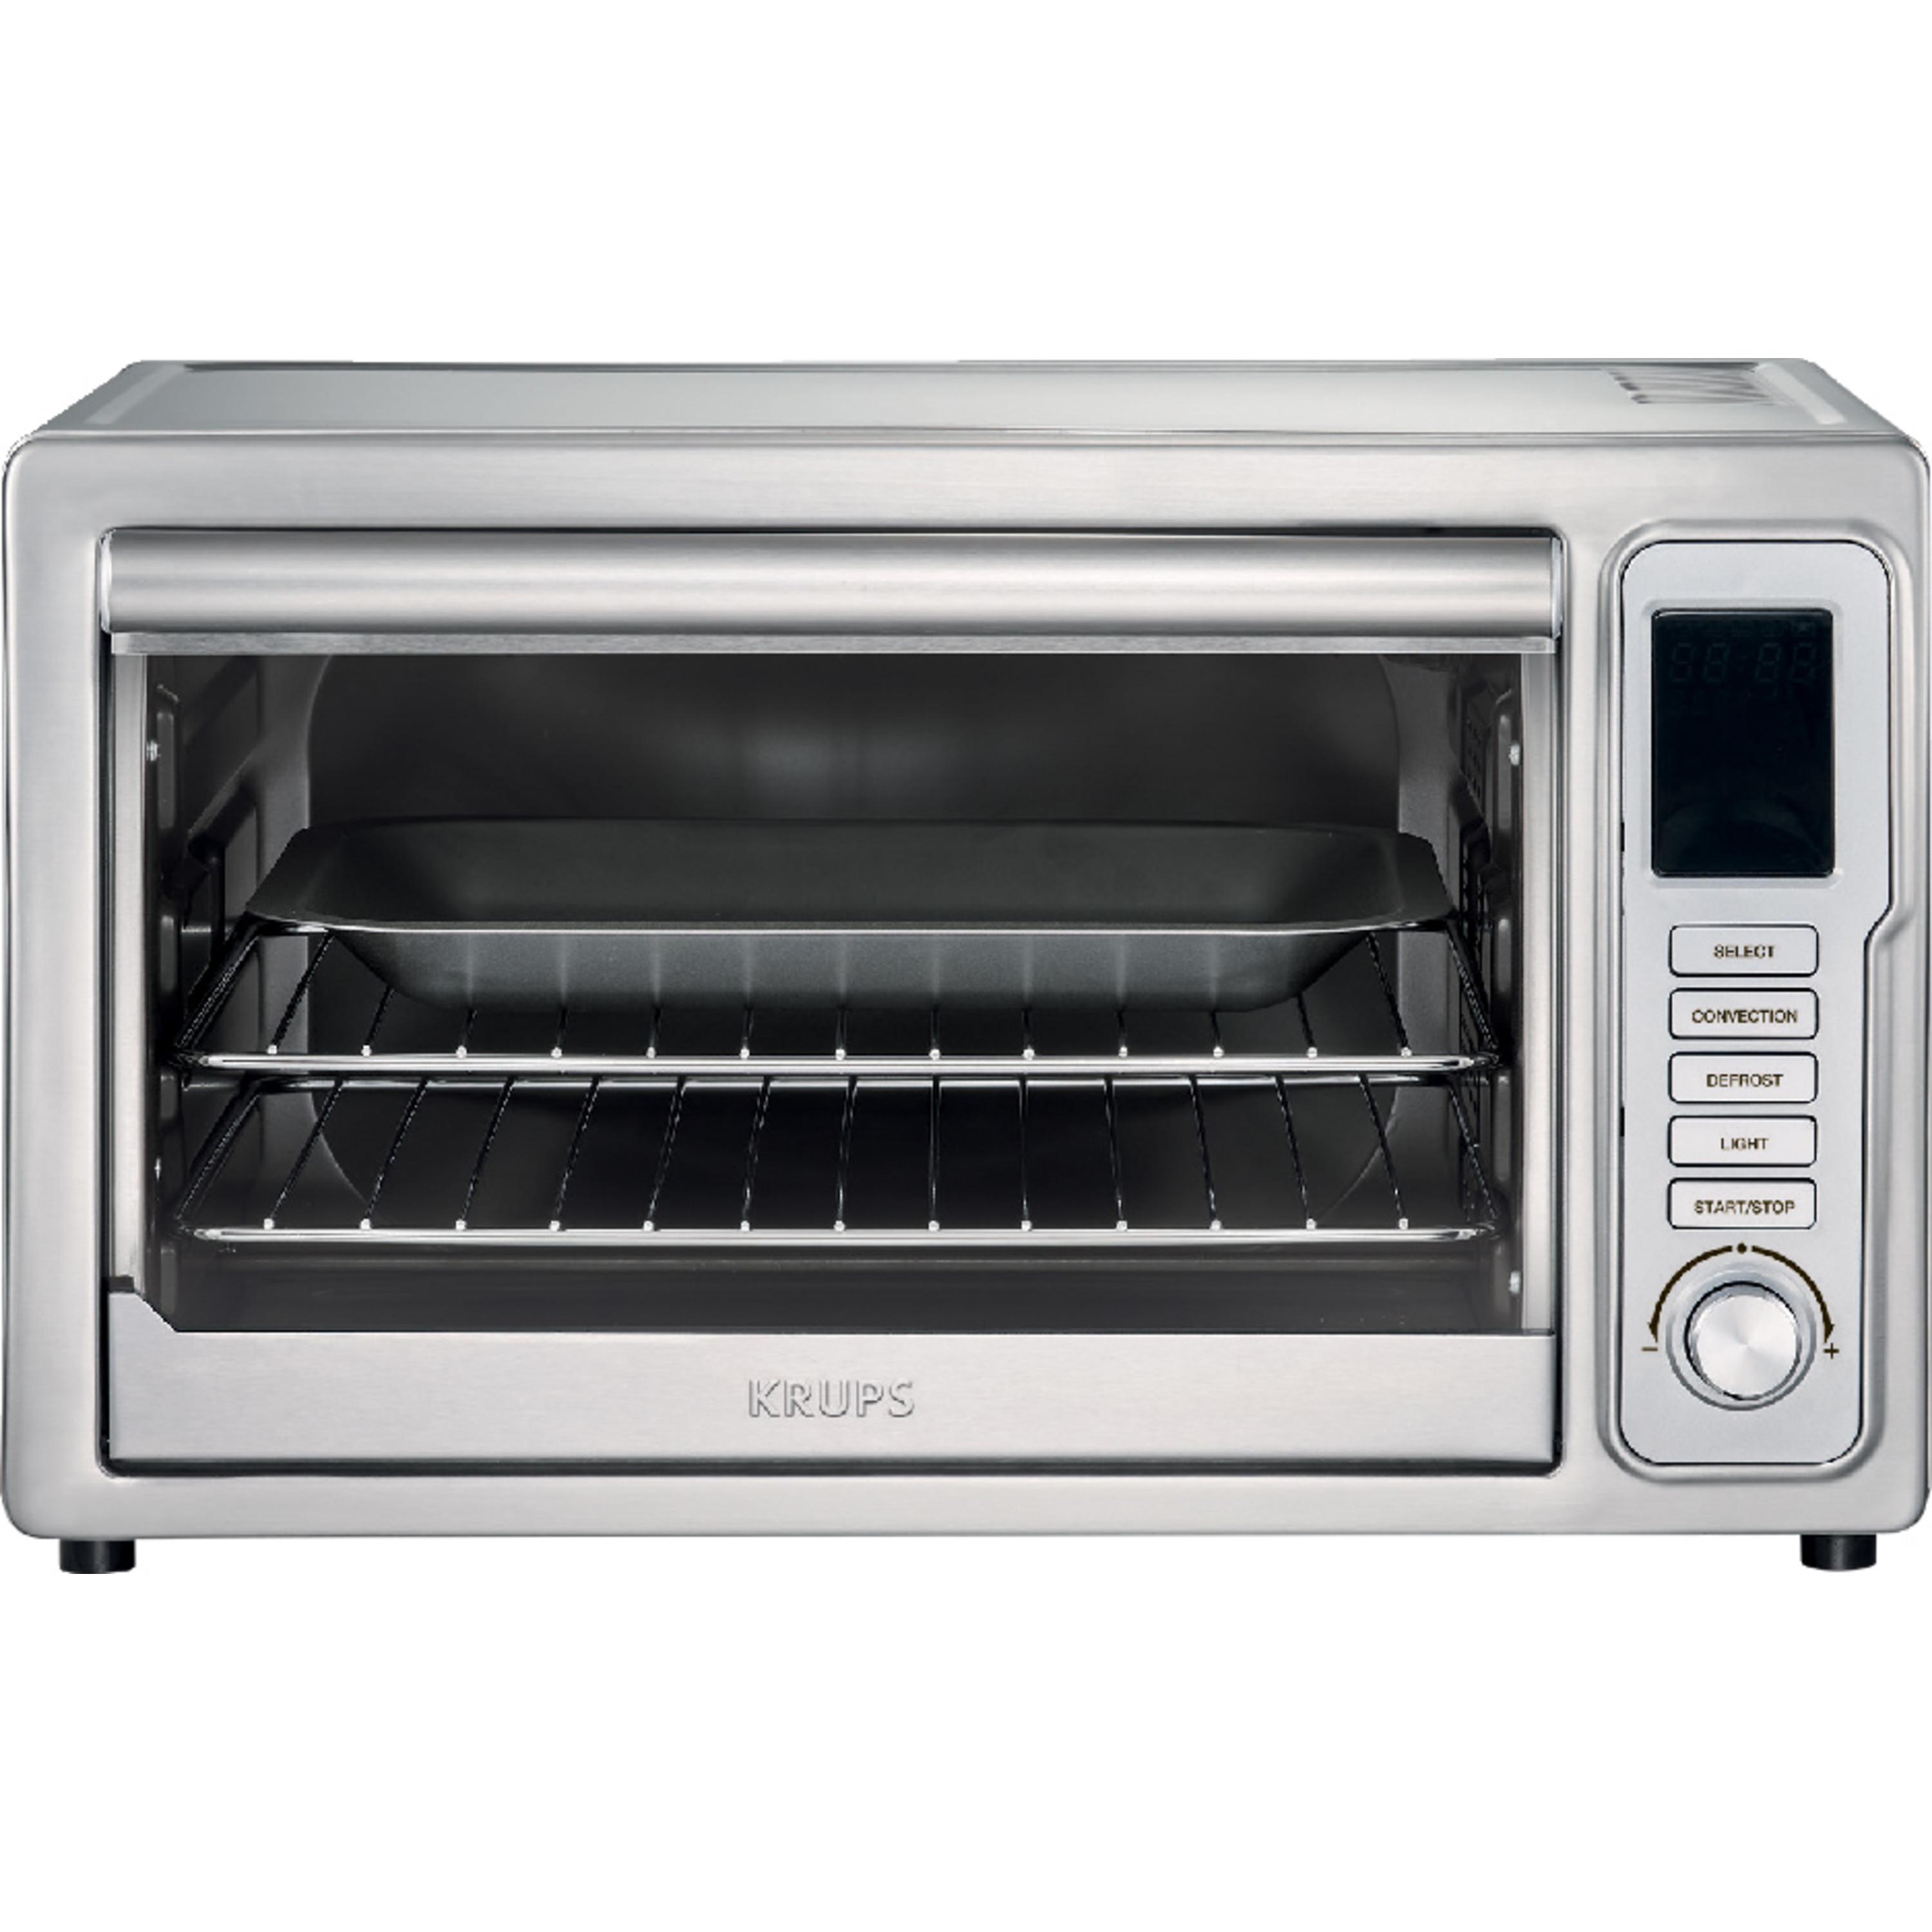 KRUPS, Deluxe Convection Toaster Oven, Stainless Steel OK710D51